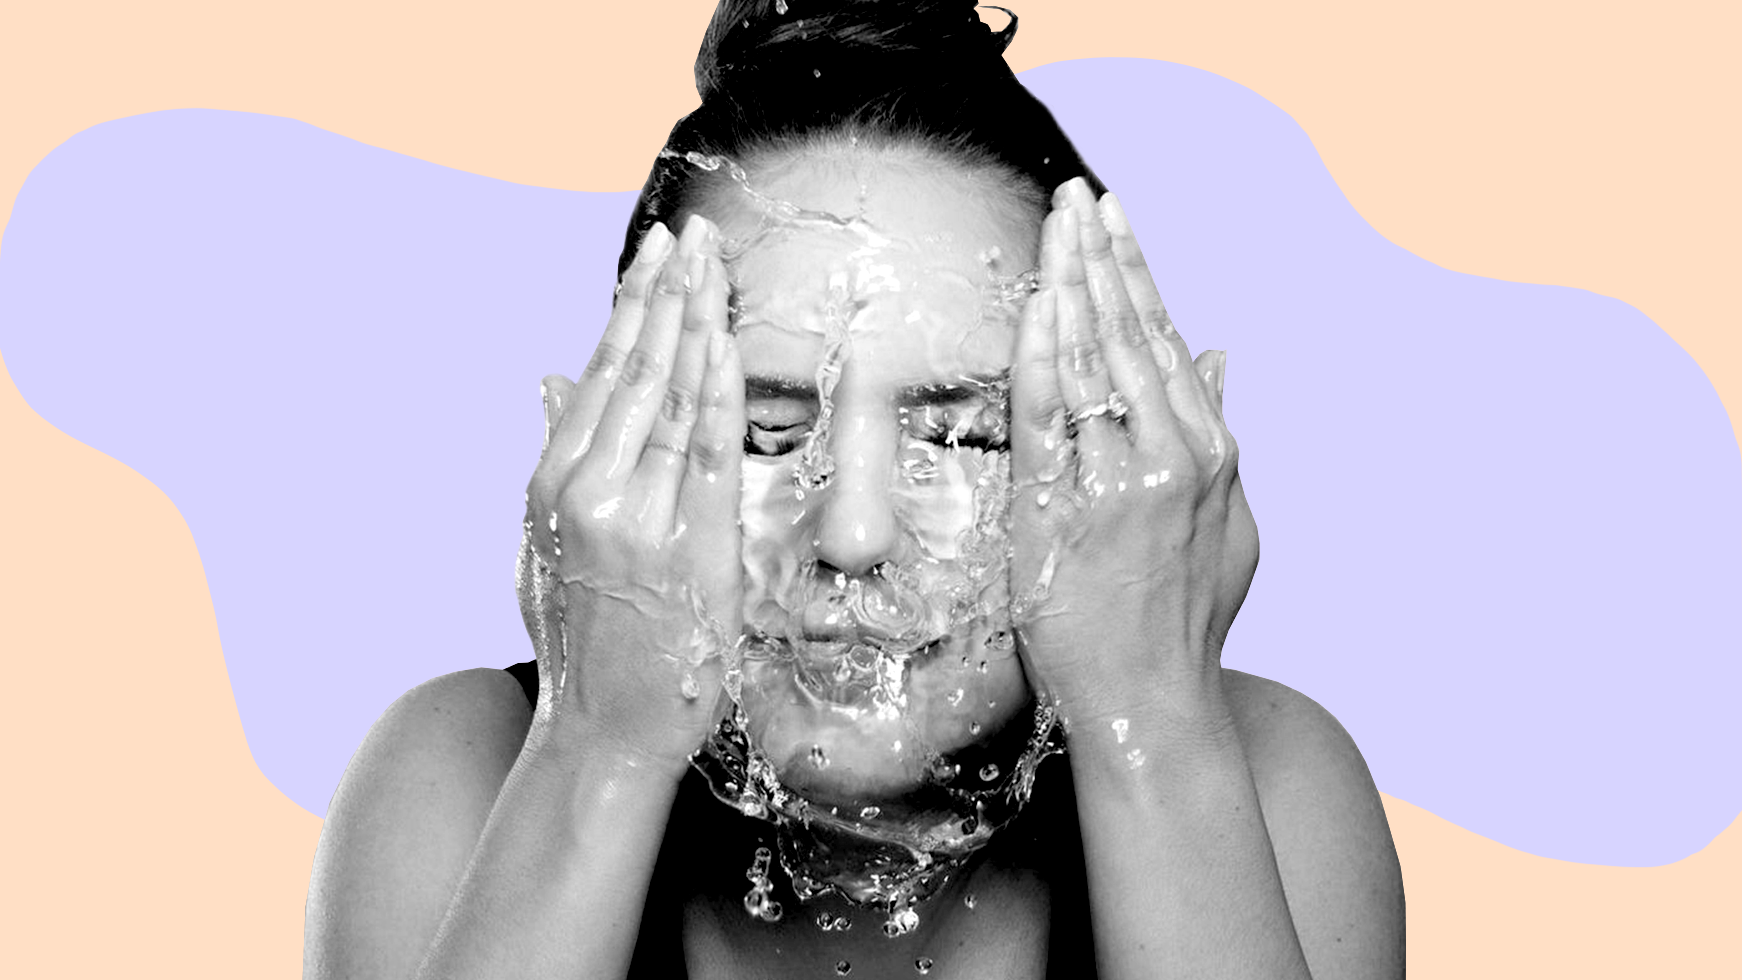 The Best Waterproof Makeup Products, Based on Me Dunking My Face In Water